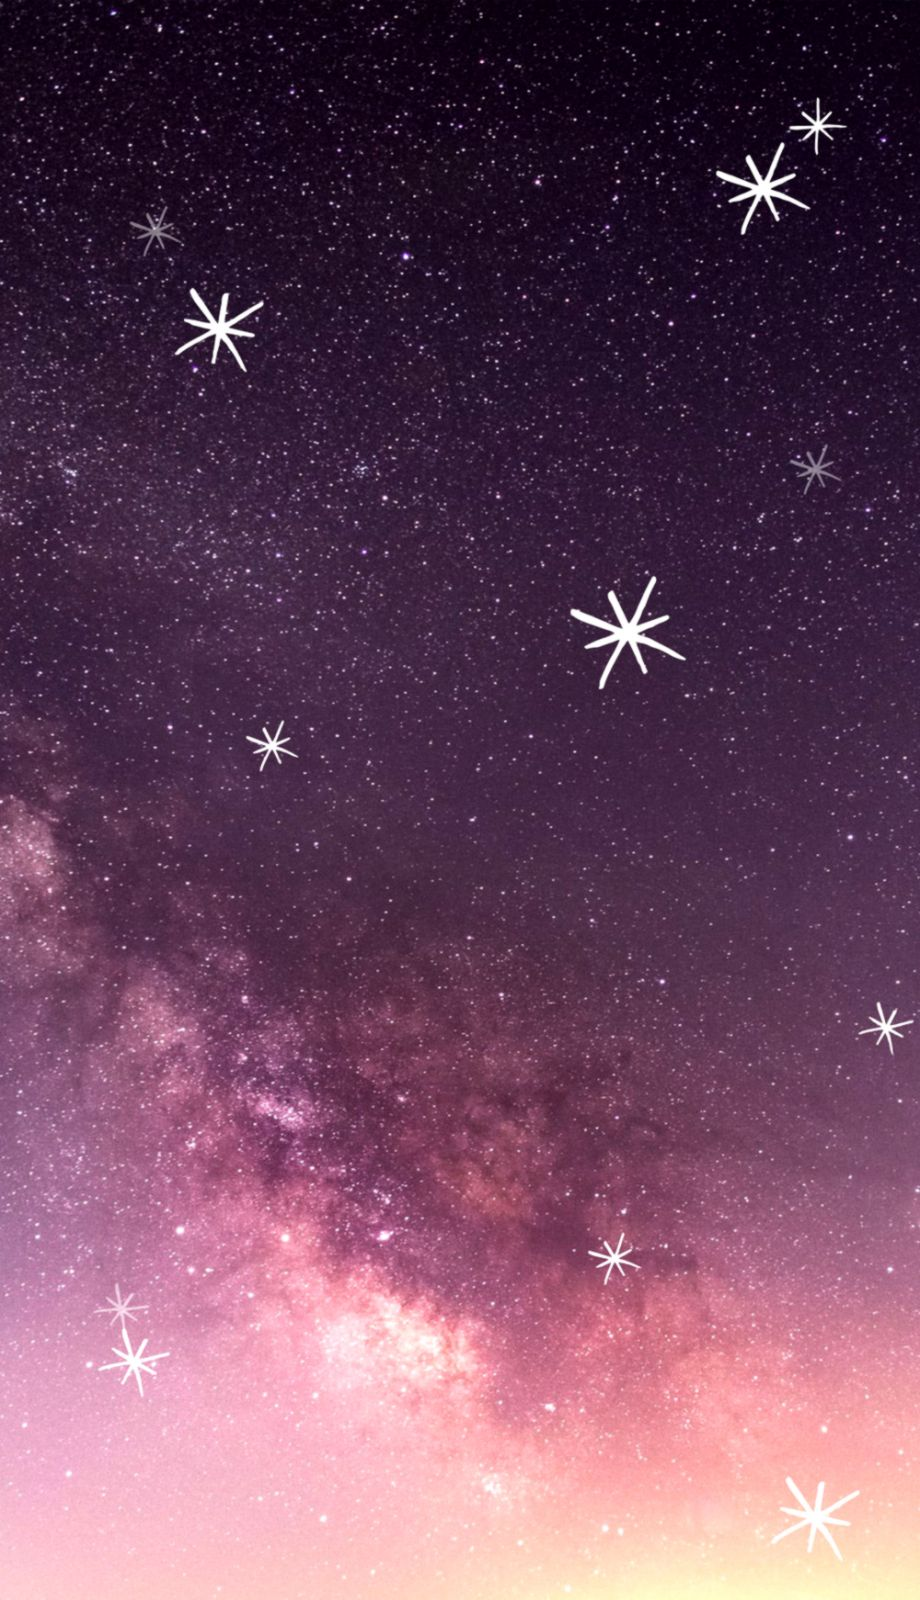 Stars Wallpaper Iphone Wallpapers Master